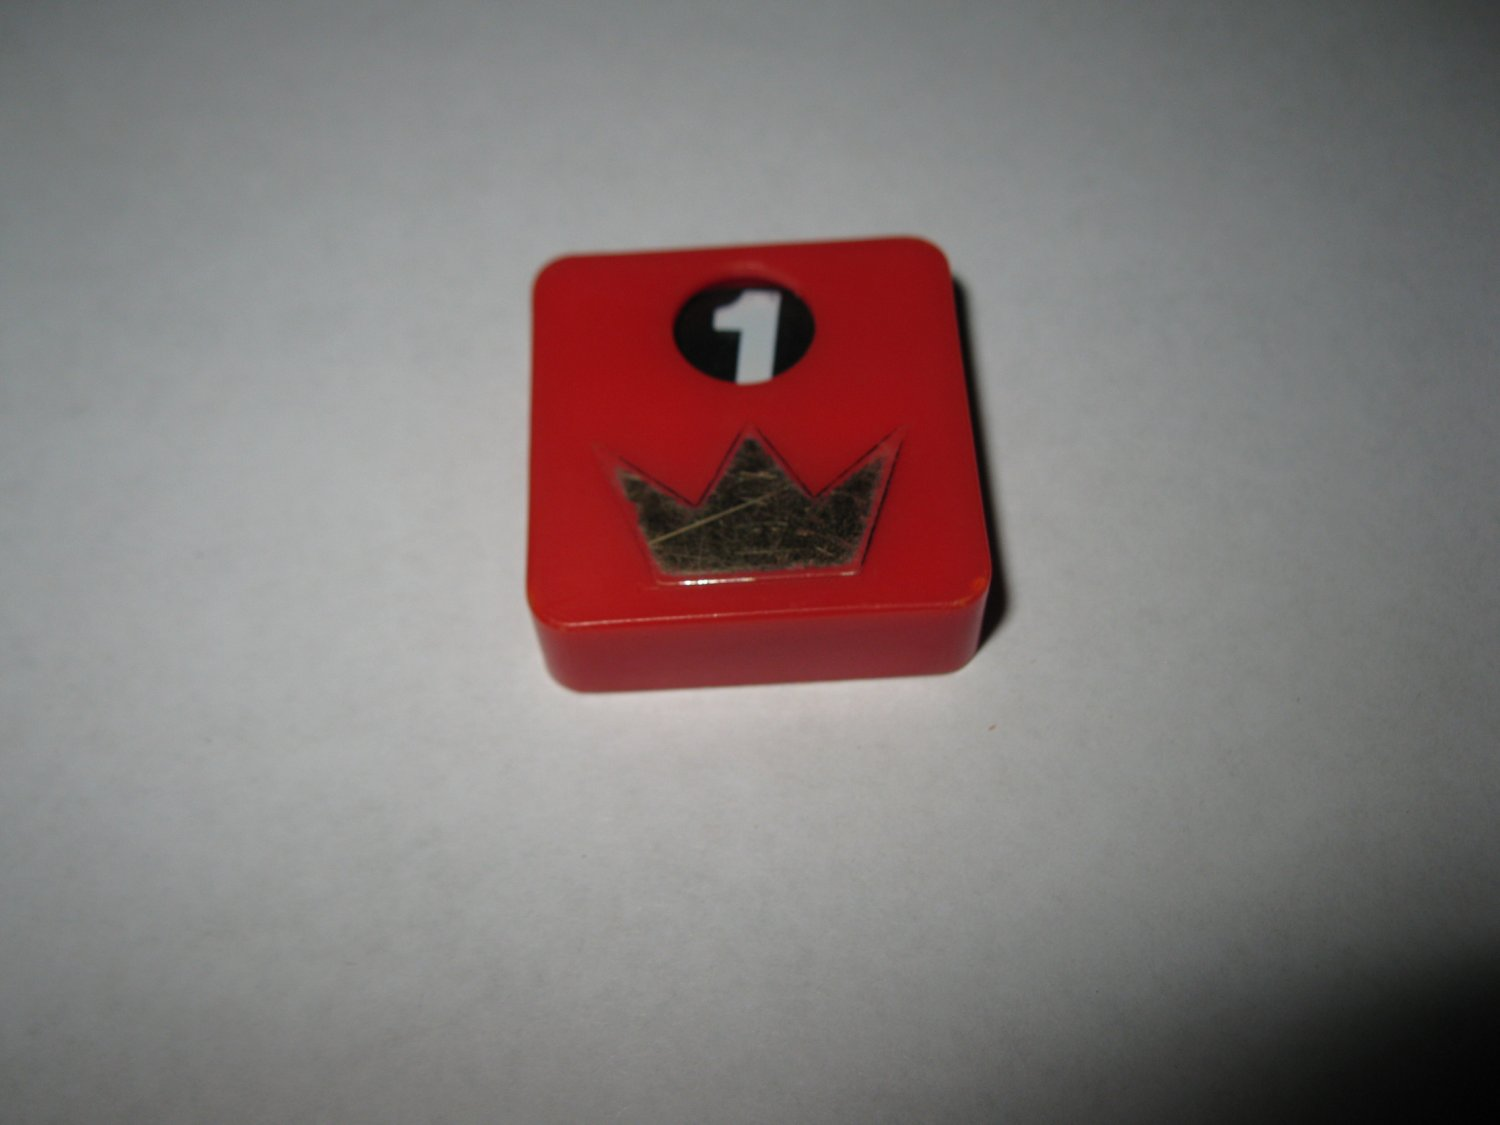 1977 Shogun Board Game Piece: red Crown Game Square Tile